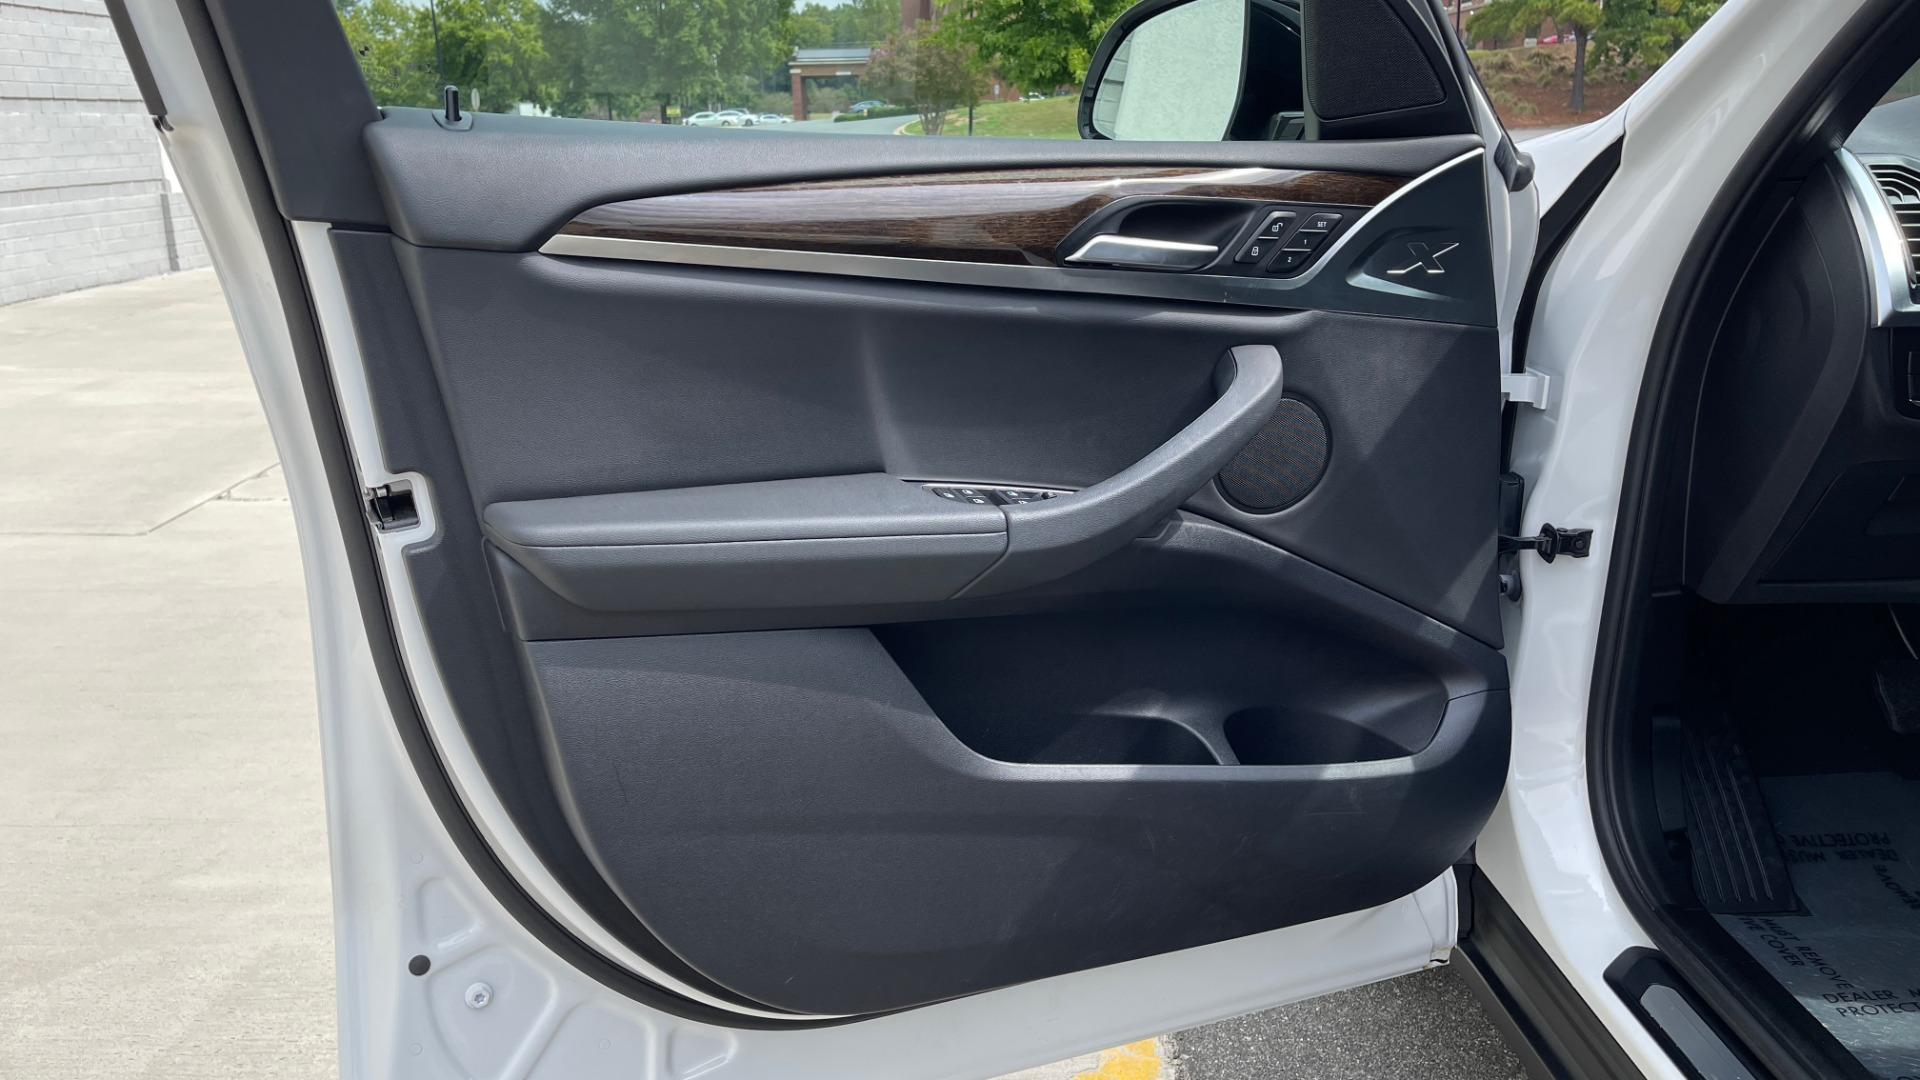 Used 2018 BMW X3 XDRIVE30I / NAV / PANO-ROOF / HTD STS / PARK DIST CNTRL / REARVIEW for sale $38,995 at Formula Imports in Charlotte NC 28227 25